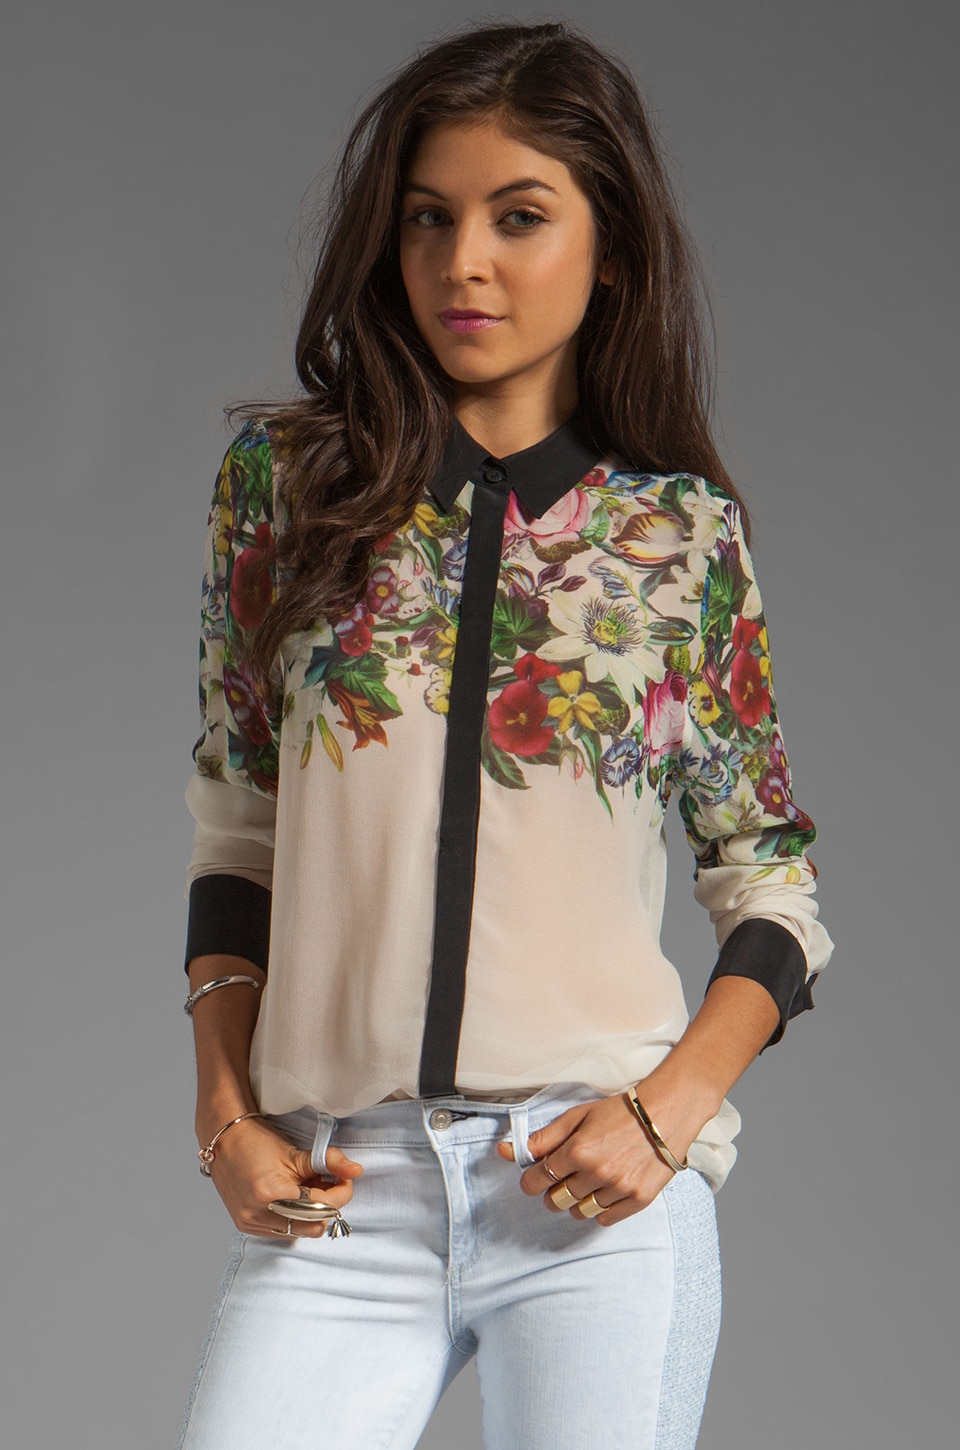 Zimmermann Rising Garland Shirt in Floral